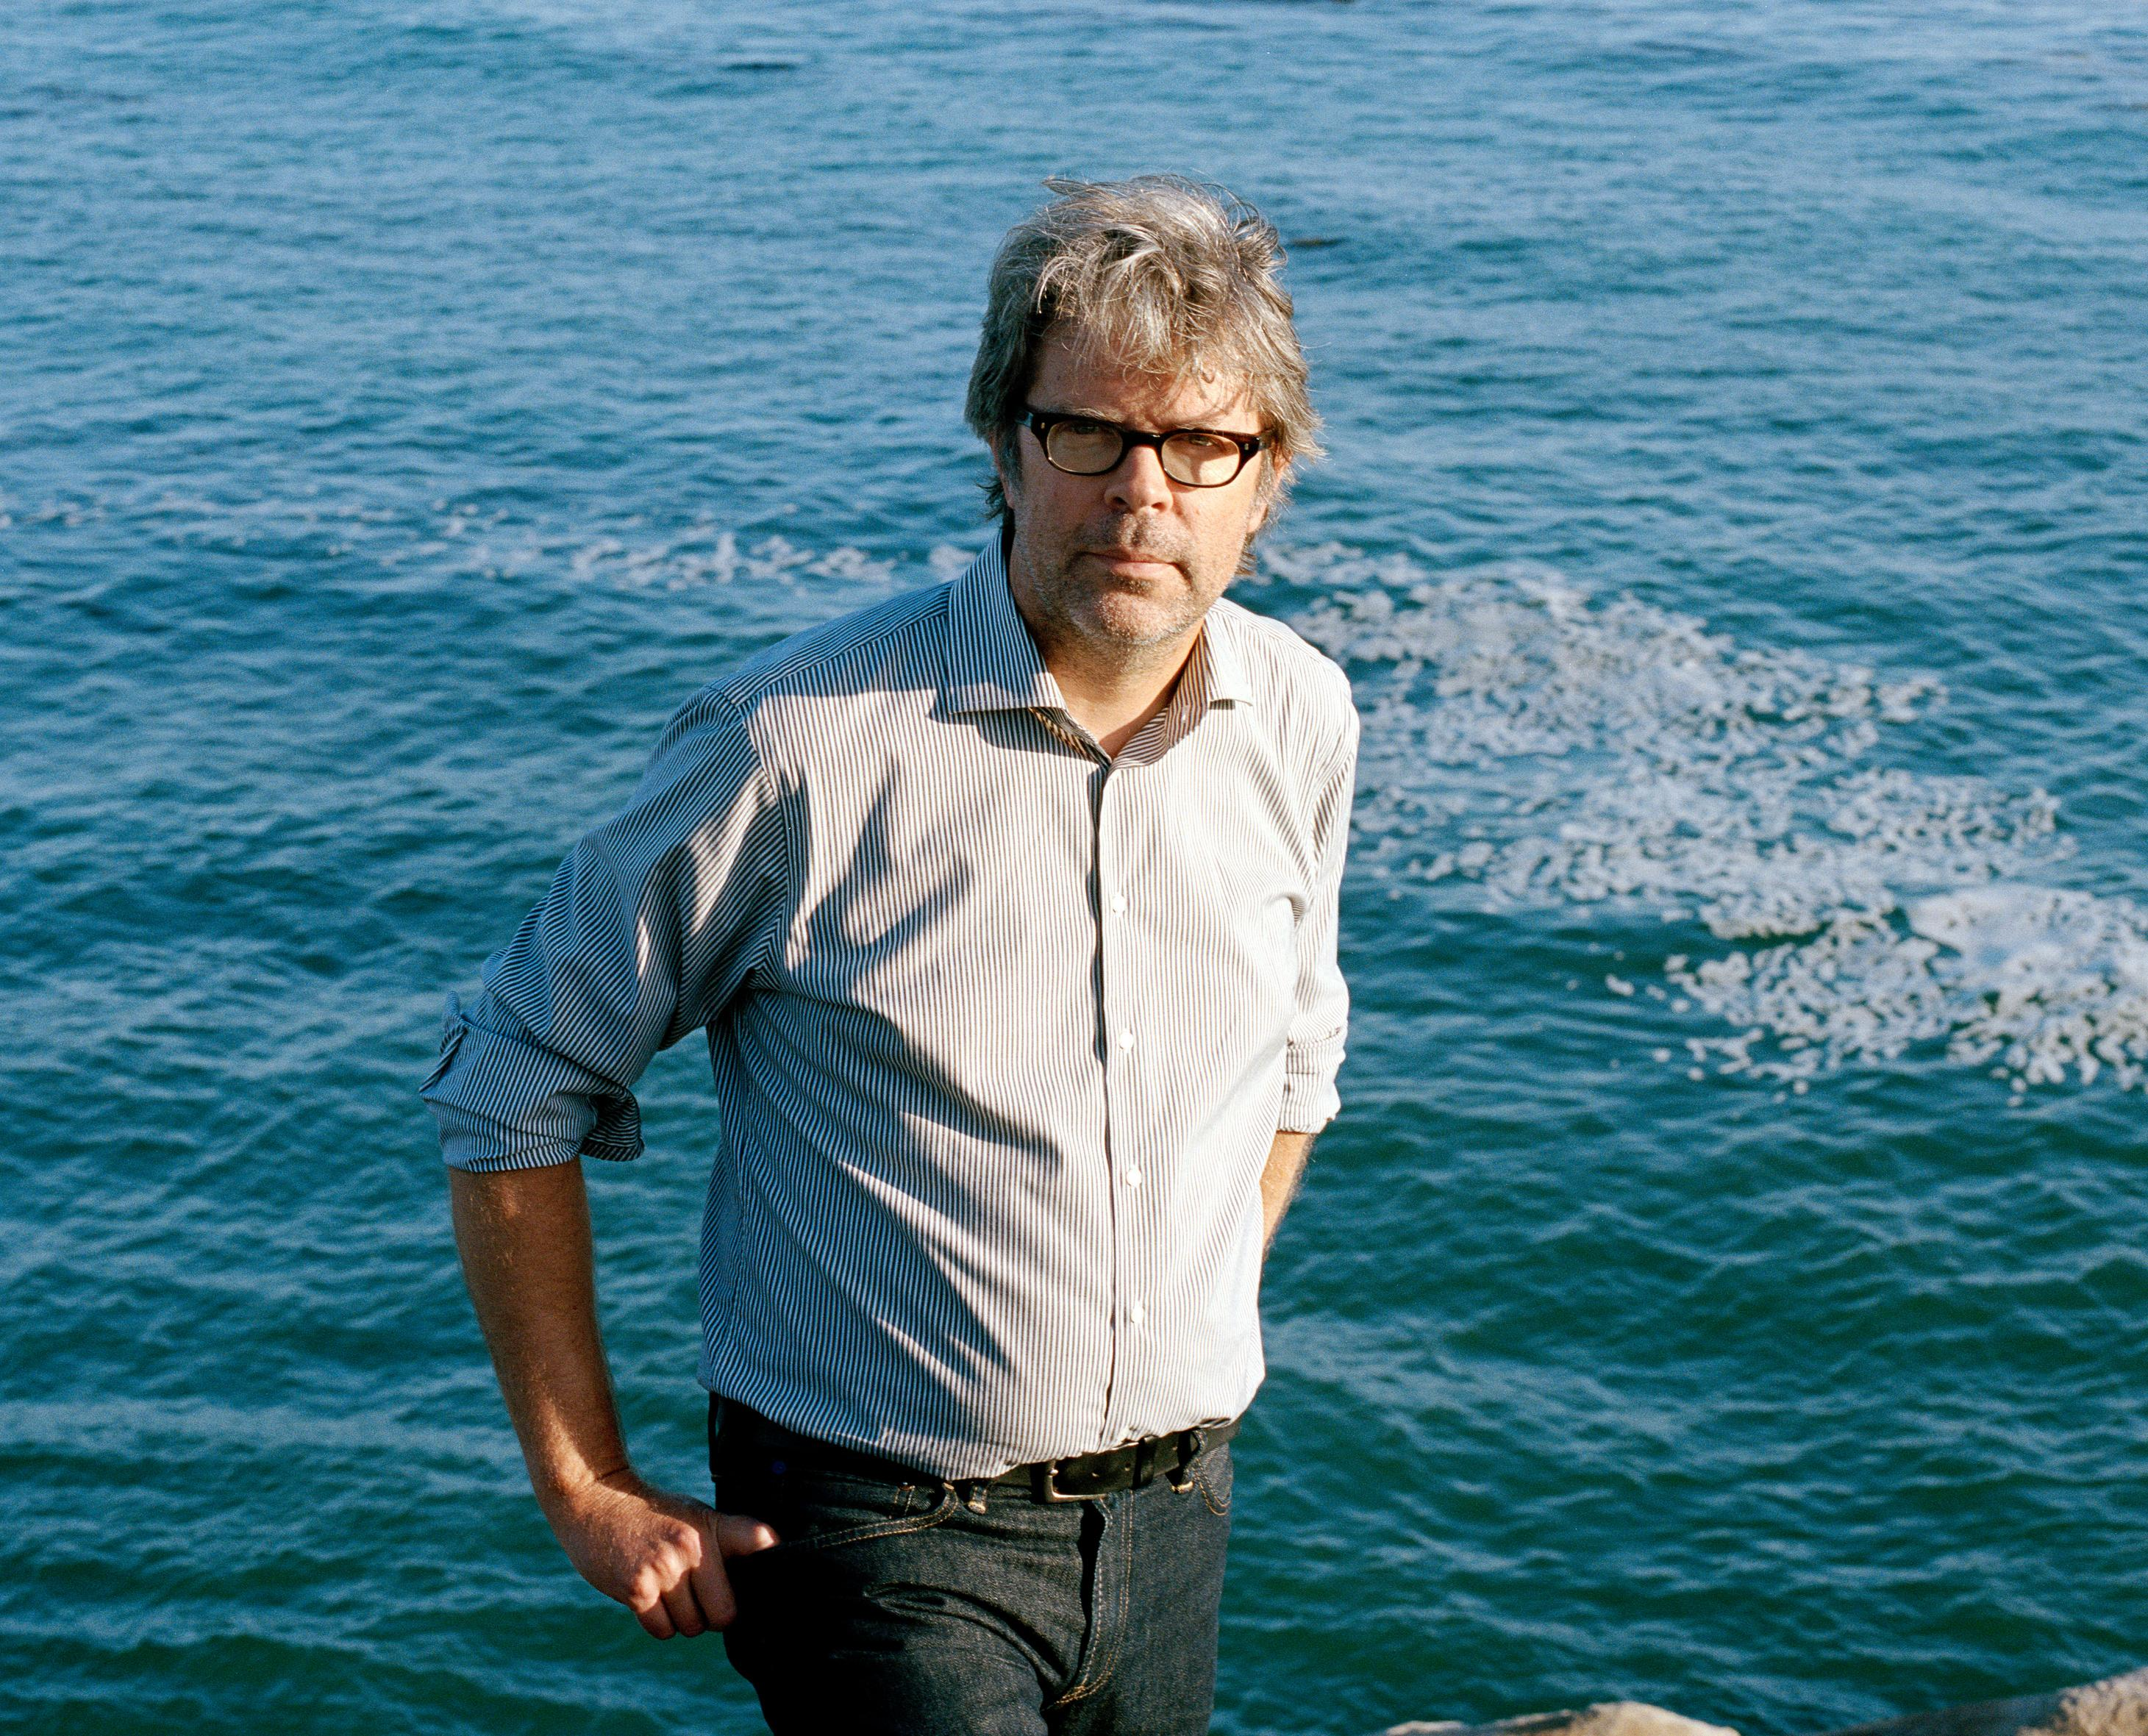 Jonathan Franzen was mocked for sharing his writing tips. Me? I'm all ears